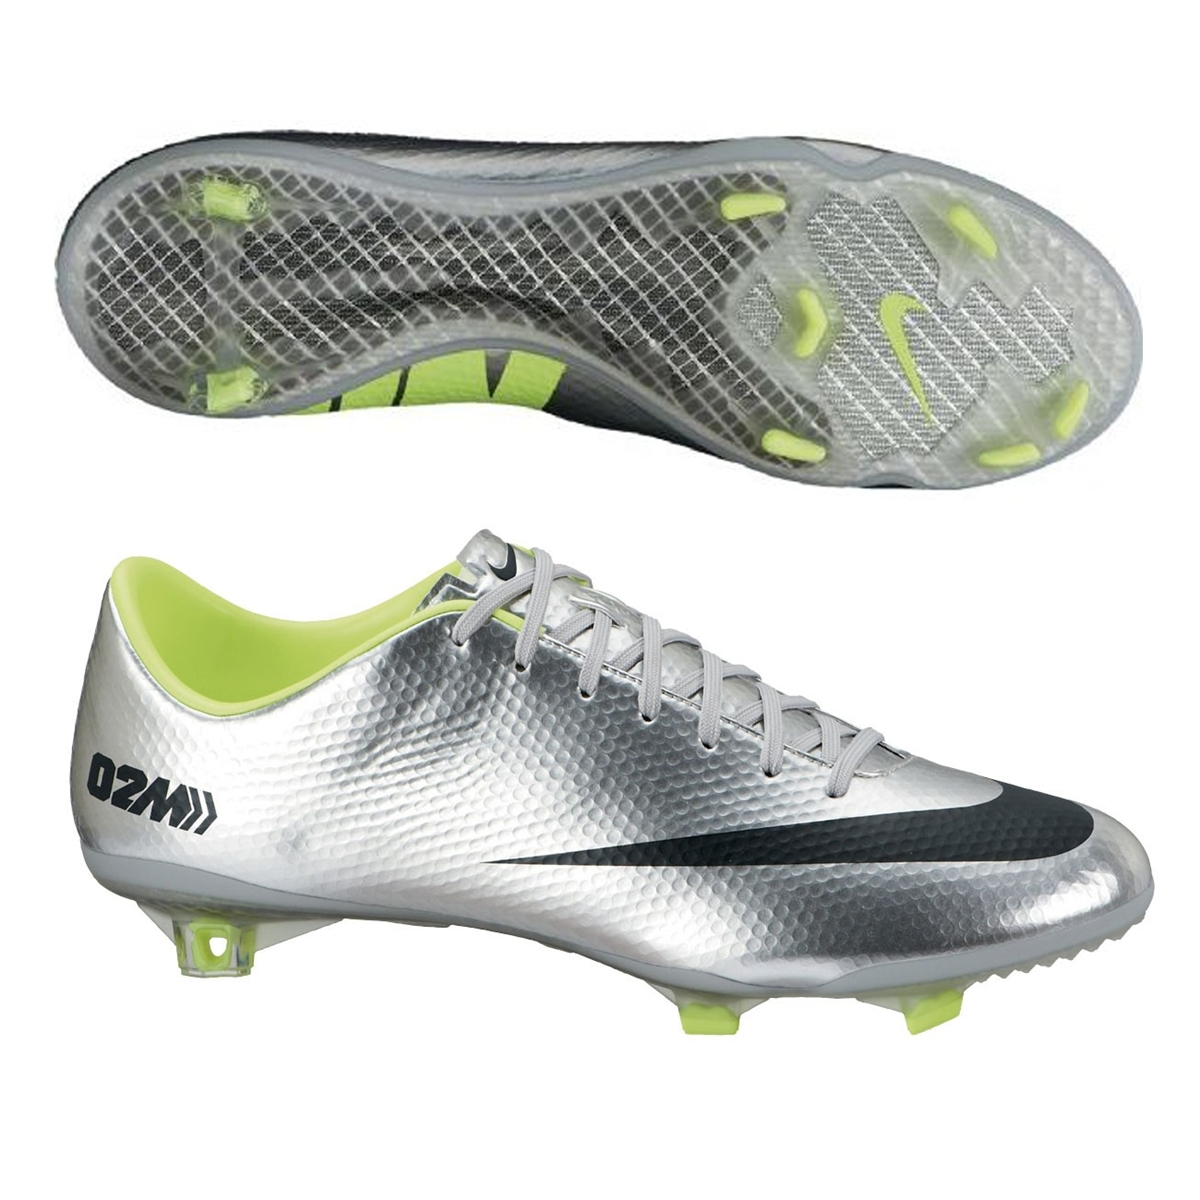 Nike Mercurial Vapor IX Soccer Cleats (Metallic Silver/Volt/Black)